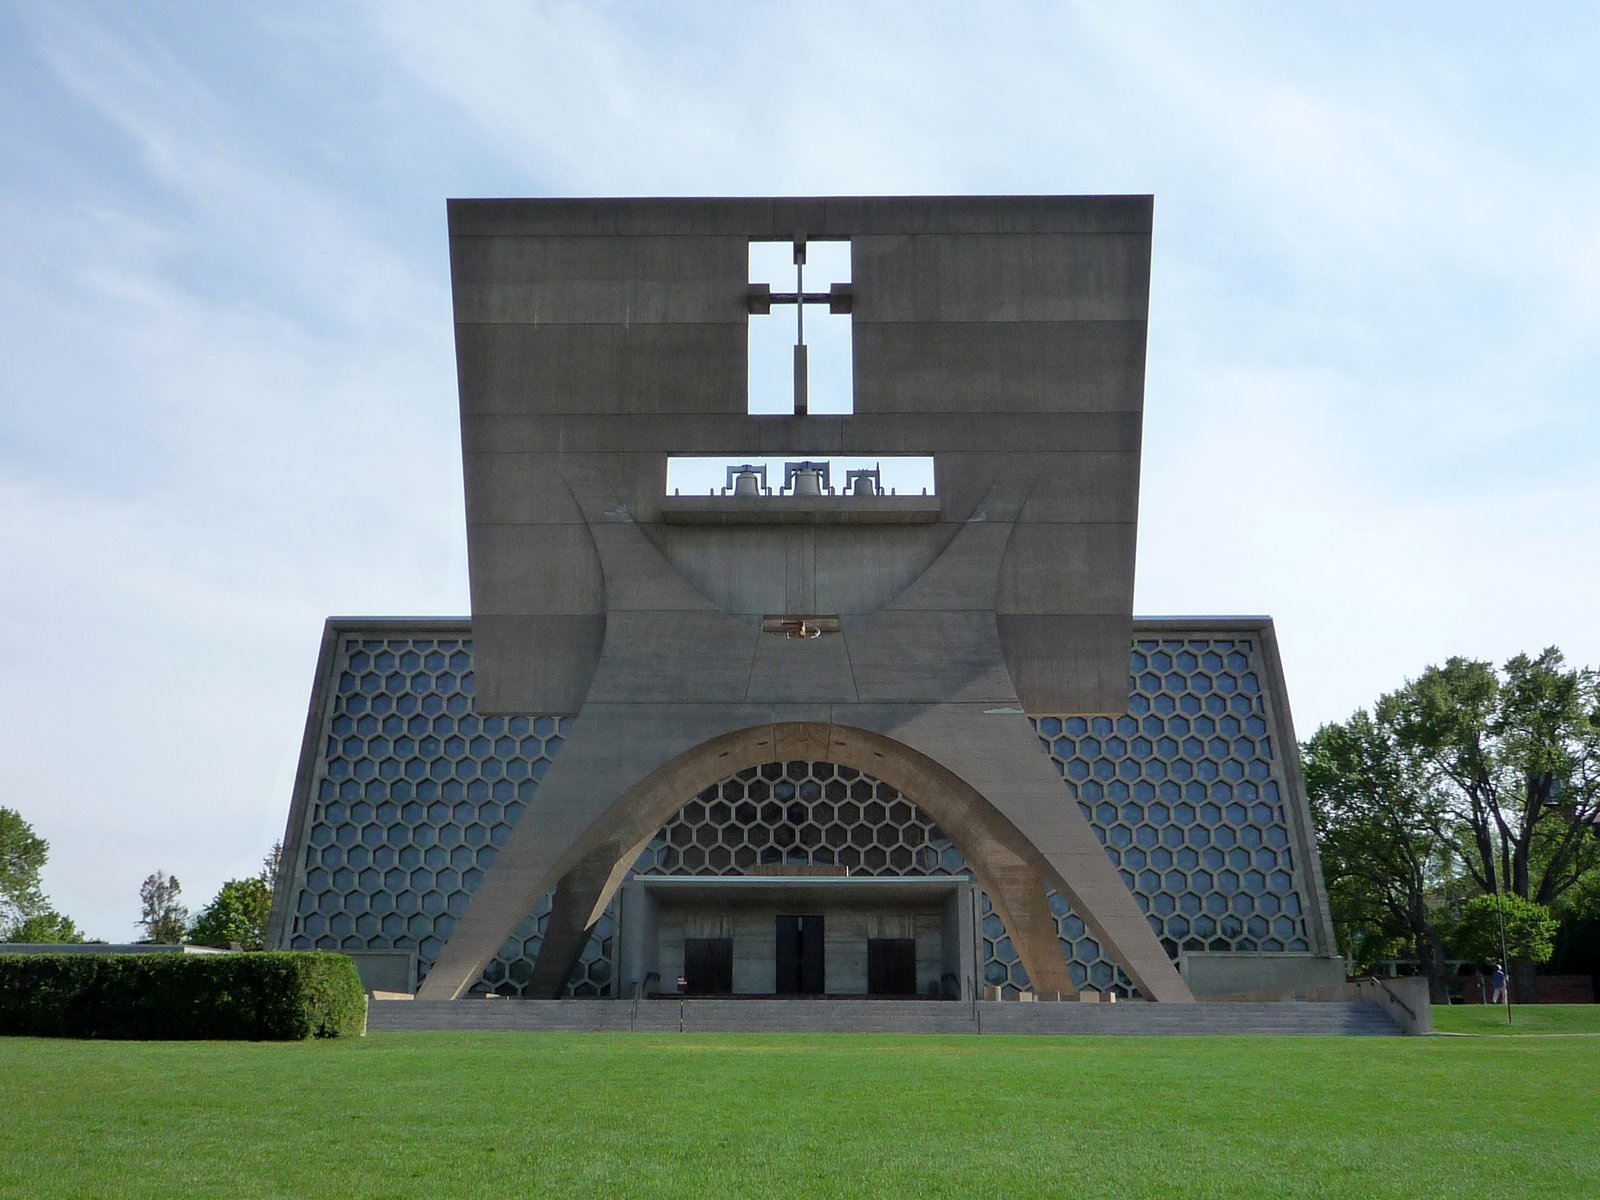 Marcel Breuer, St. John's Abbey (1961)  Designed by a Bauhaus icon, the modernist Minnesota church greets the faithful with a bell tower perched upon a curvaceous concrete stand. Breuer follows up a strong introduction with the church itself, boasting a massive wall of hexagonal stained glass and bold concrete tresses.  Photo courtesy Wikimedia Commons  Photo 3 of 10 in 10 Inspiring Modern Churches